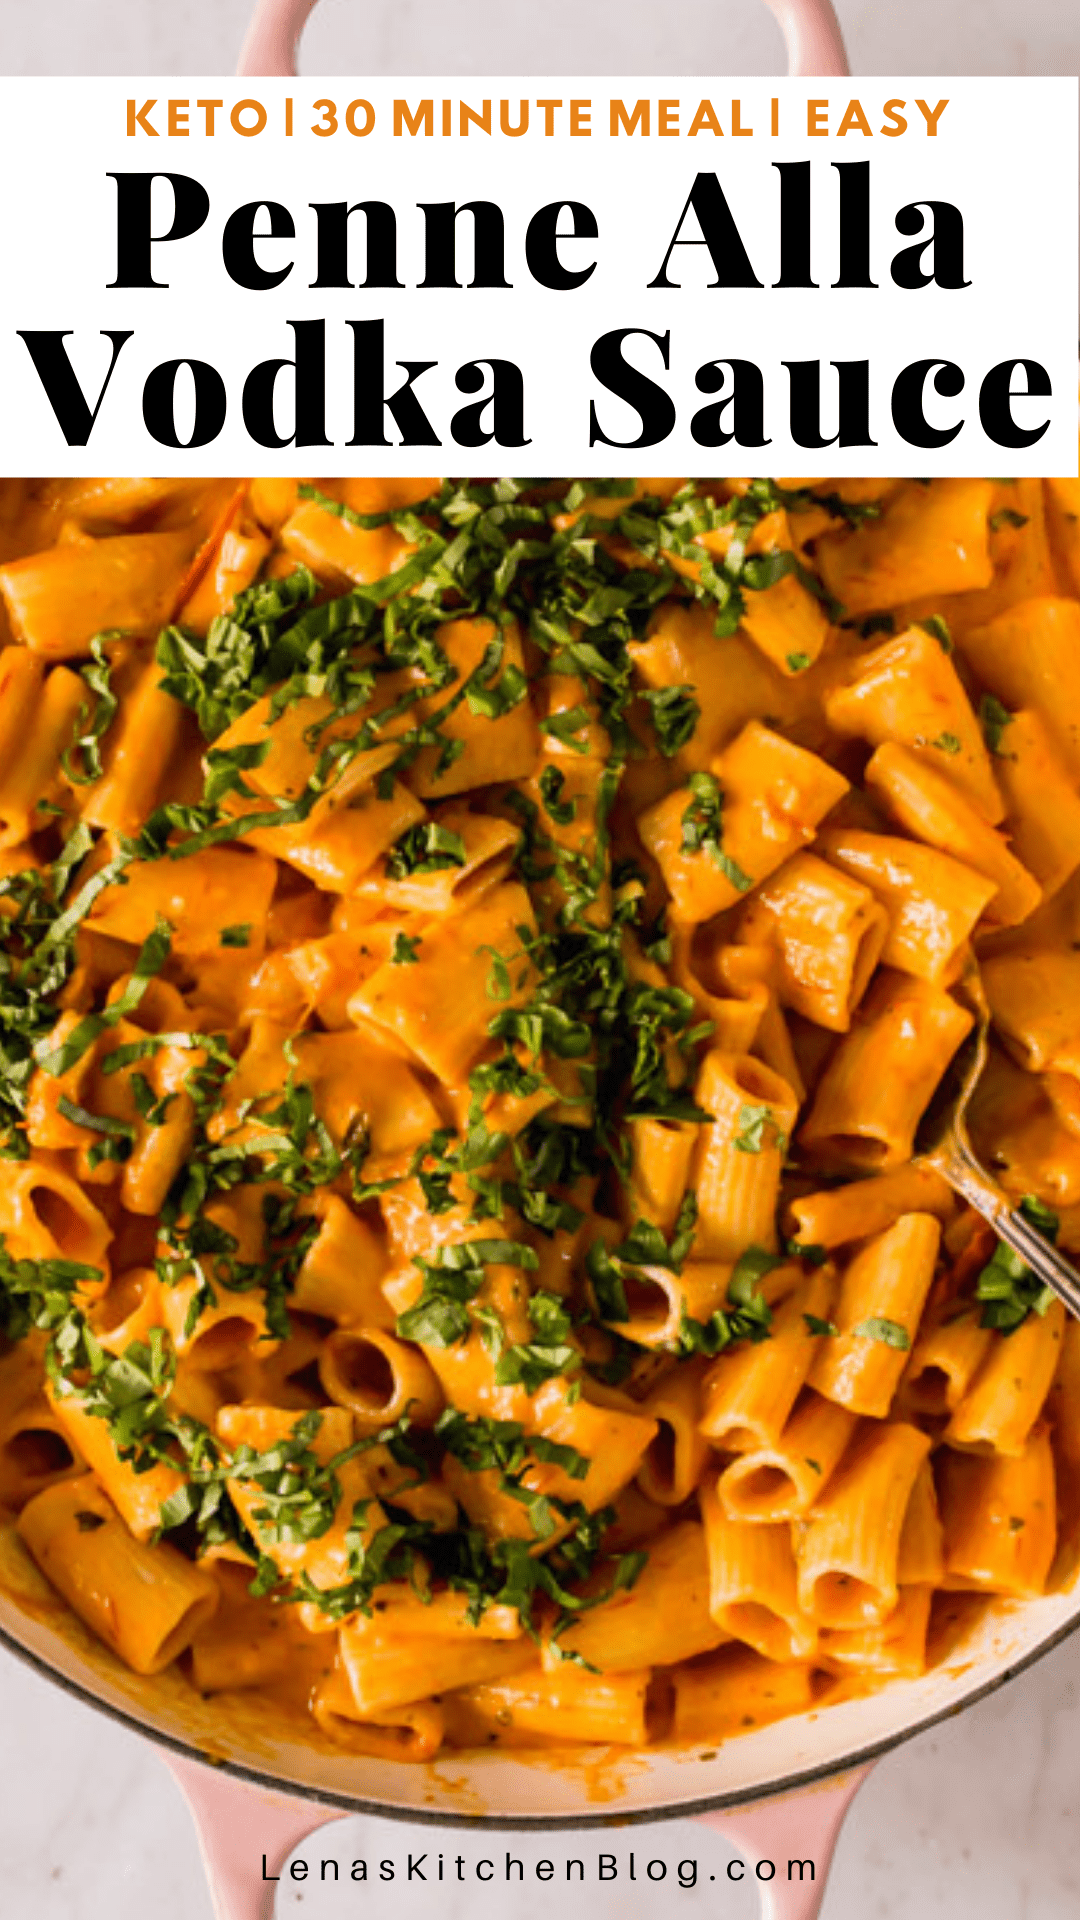 pinterest image of orange sauce-covered pasta noodles with green herbs on top.